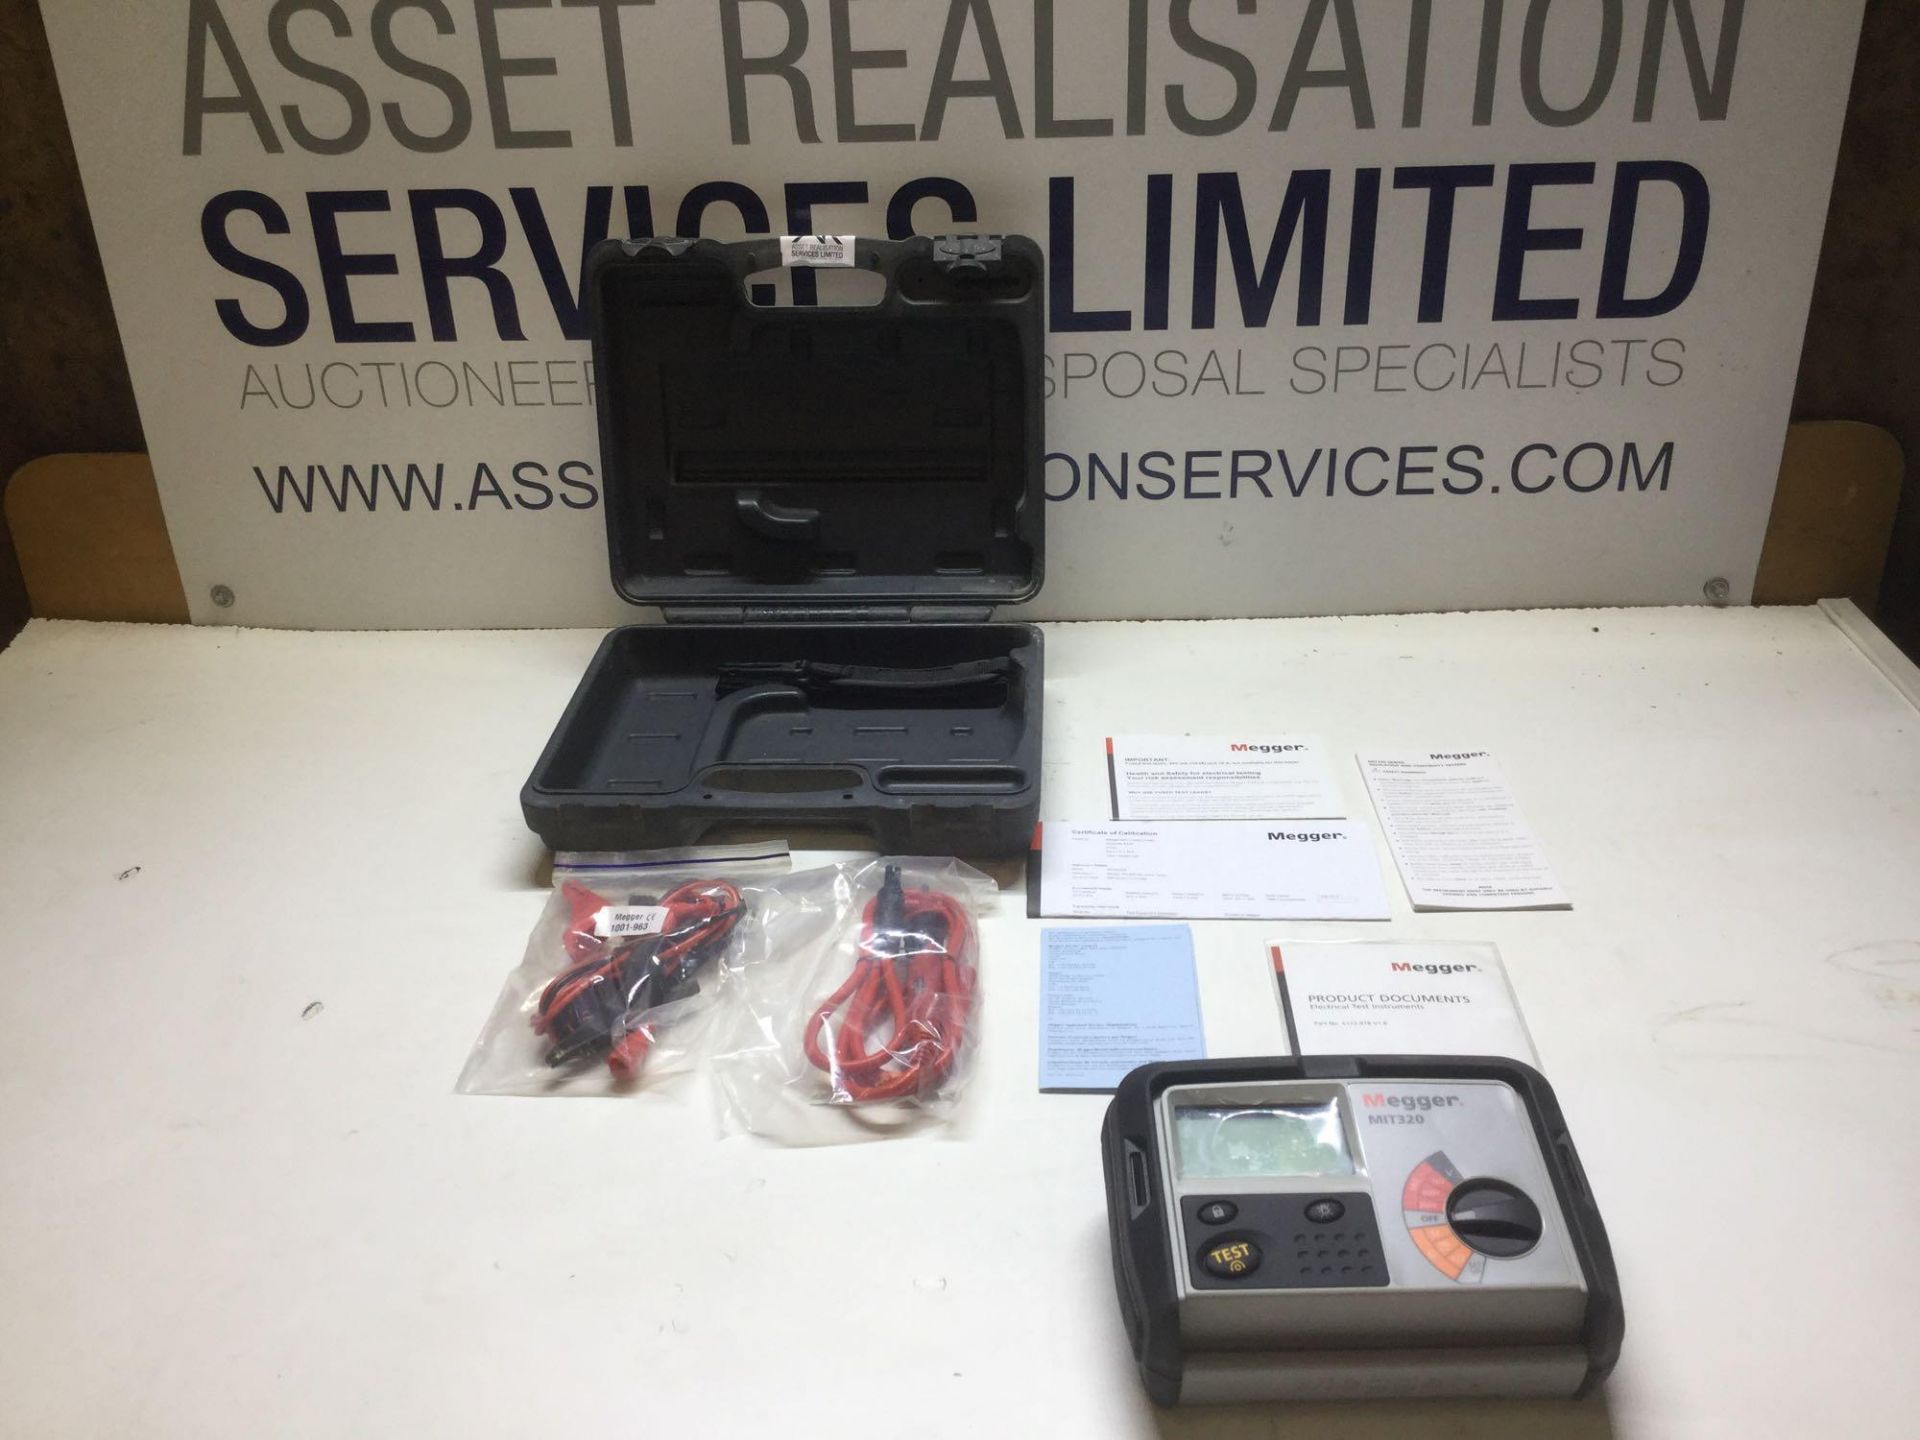 Lot 26 - Megger MIT320 Electrical Tester with all Testing Cables In Box As New